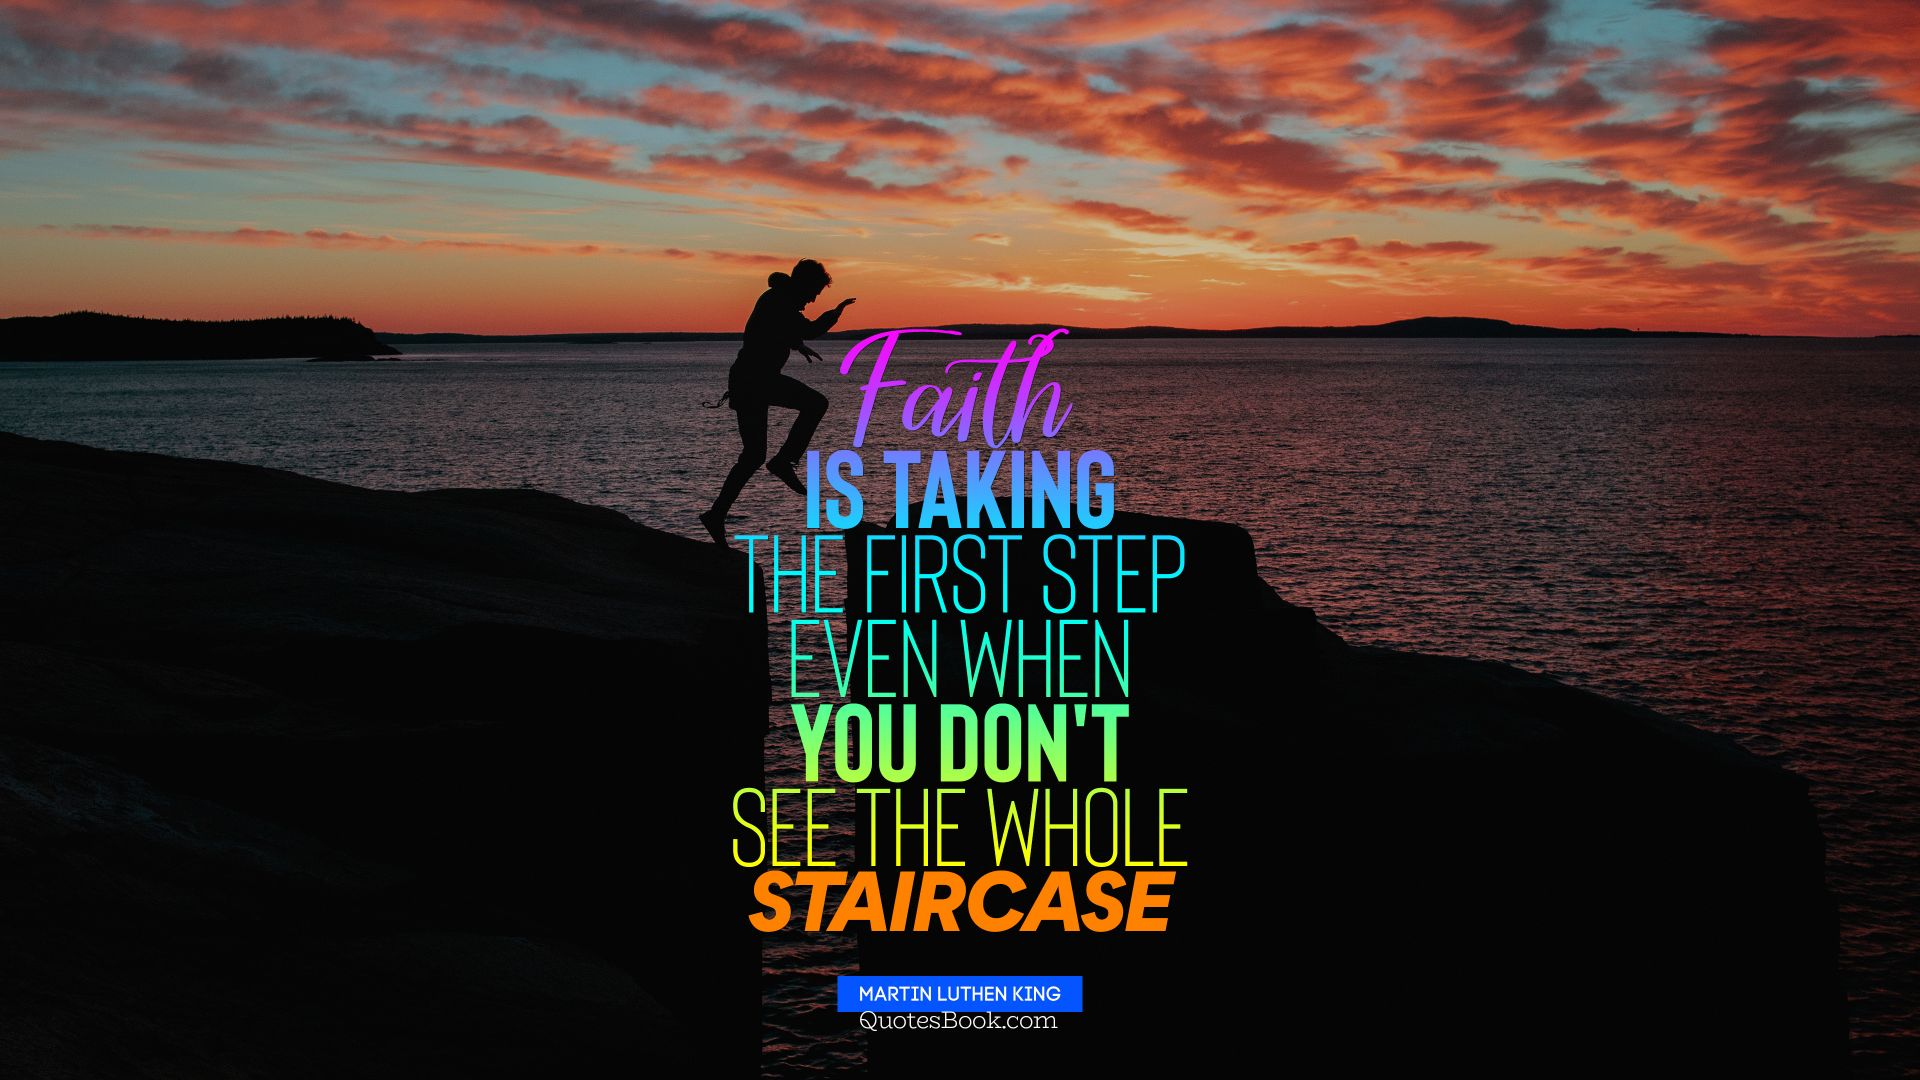 Faith is taking the first step even when you don't see the whole staircase. - Quote by Martin Luther